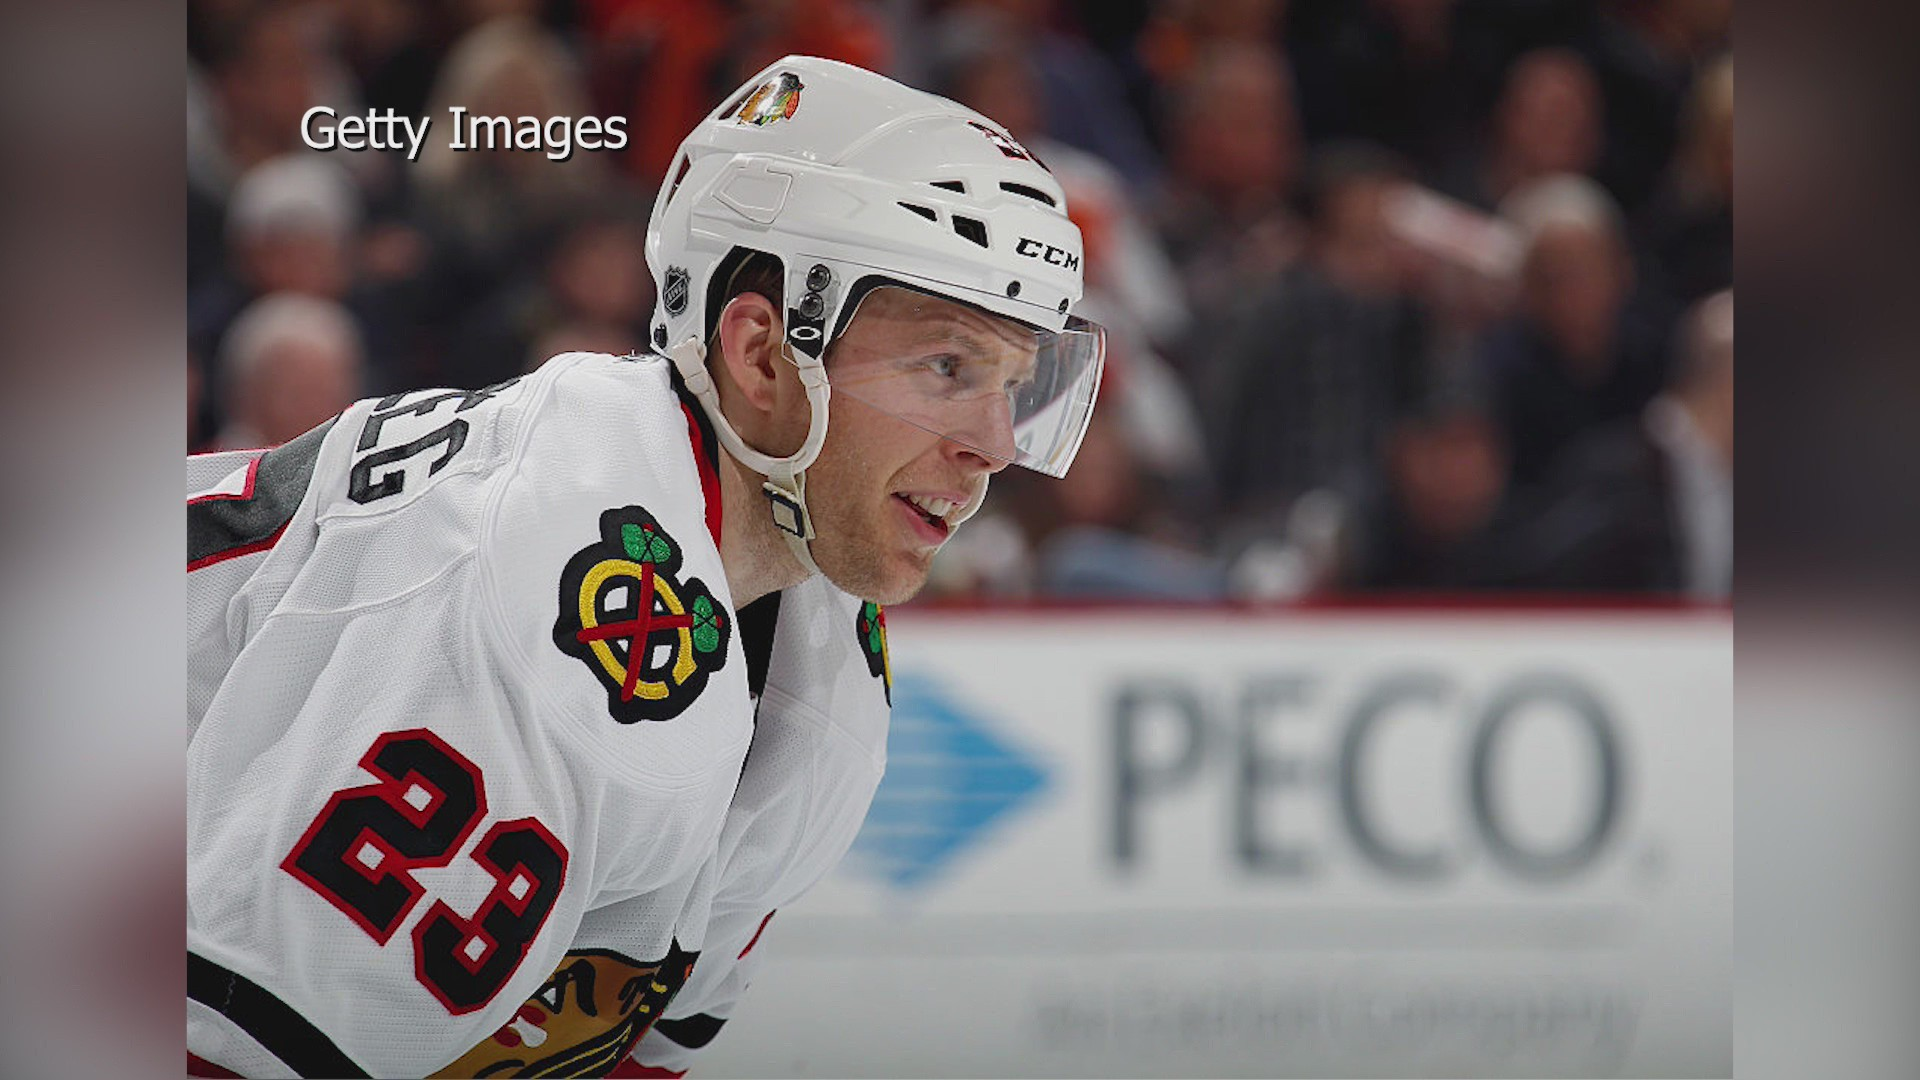 Versteeg returning to the Rockford IceHogs